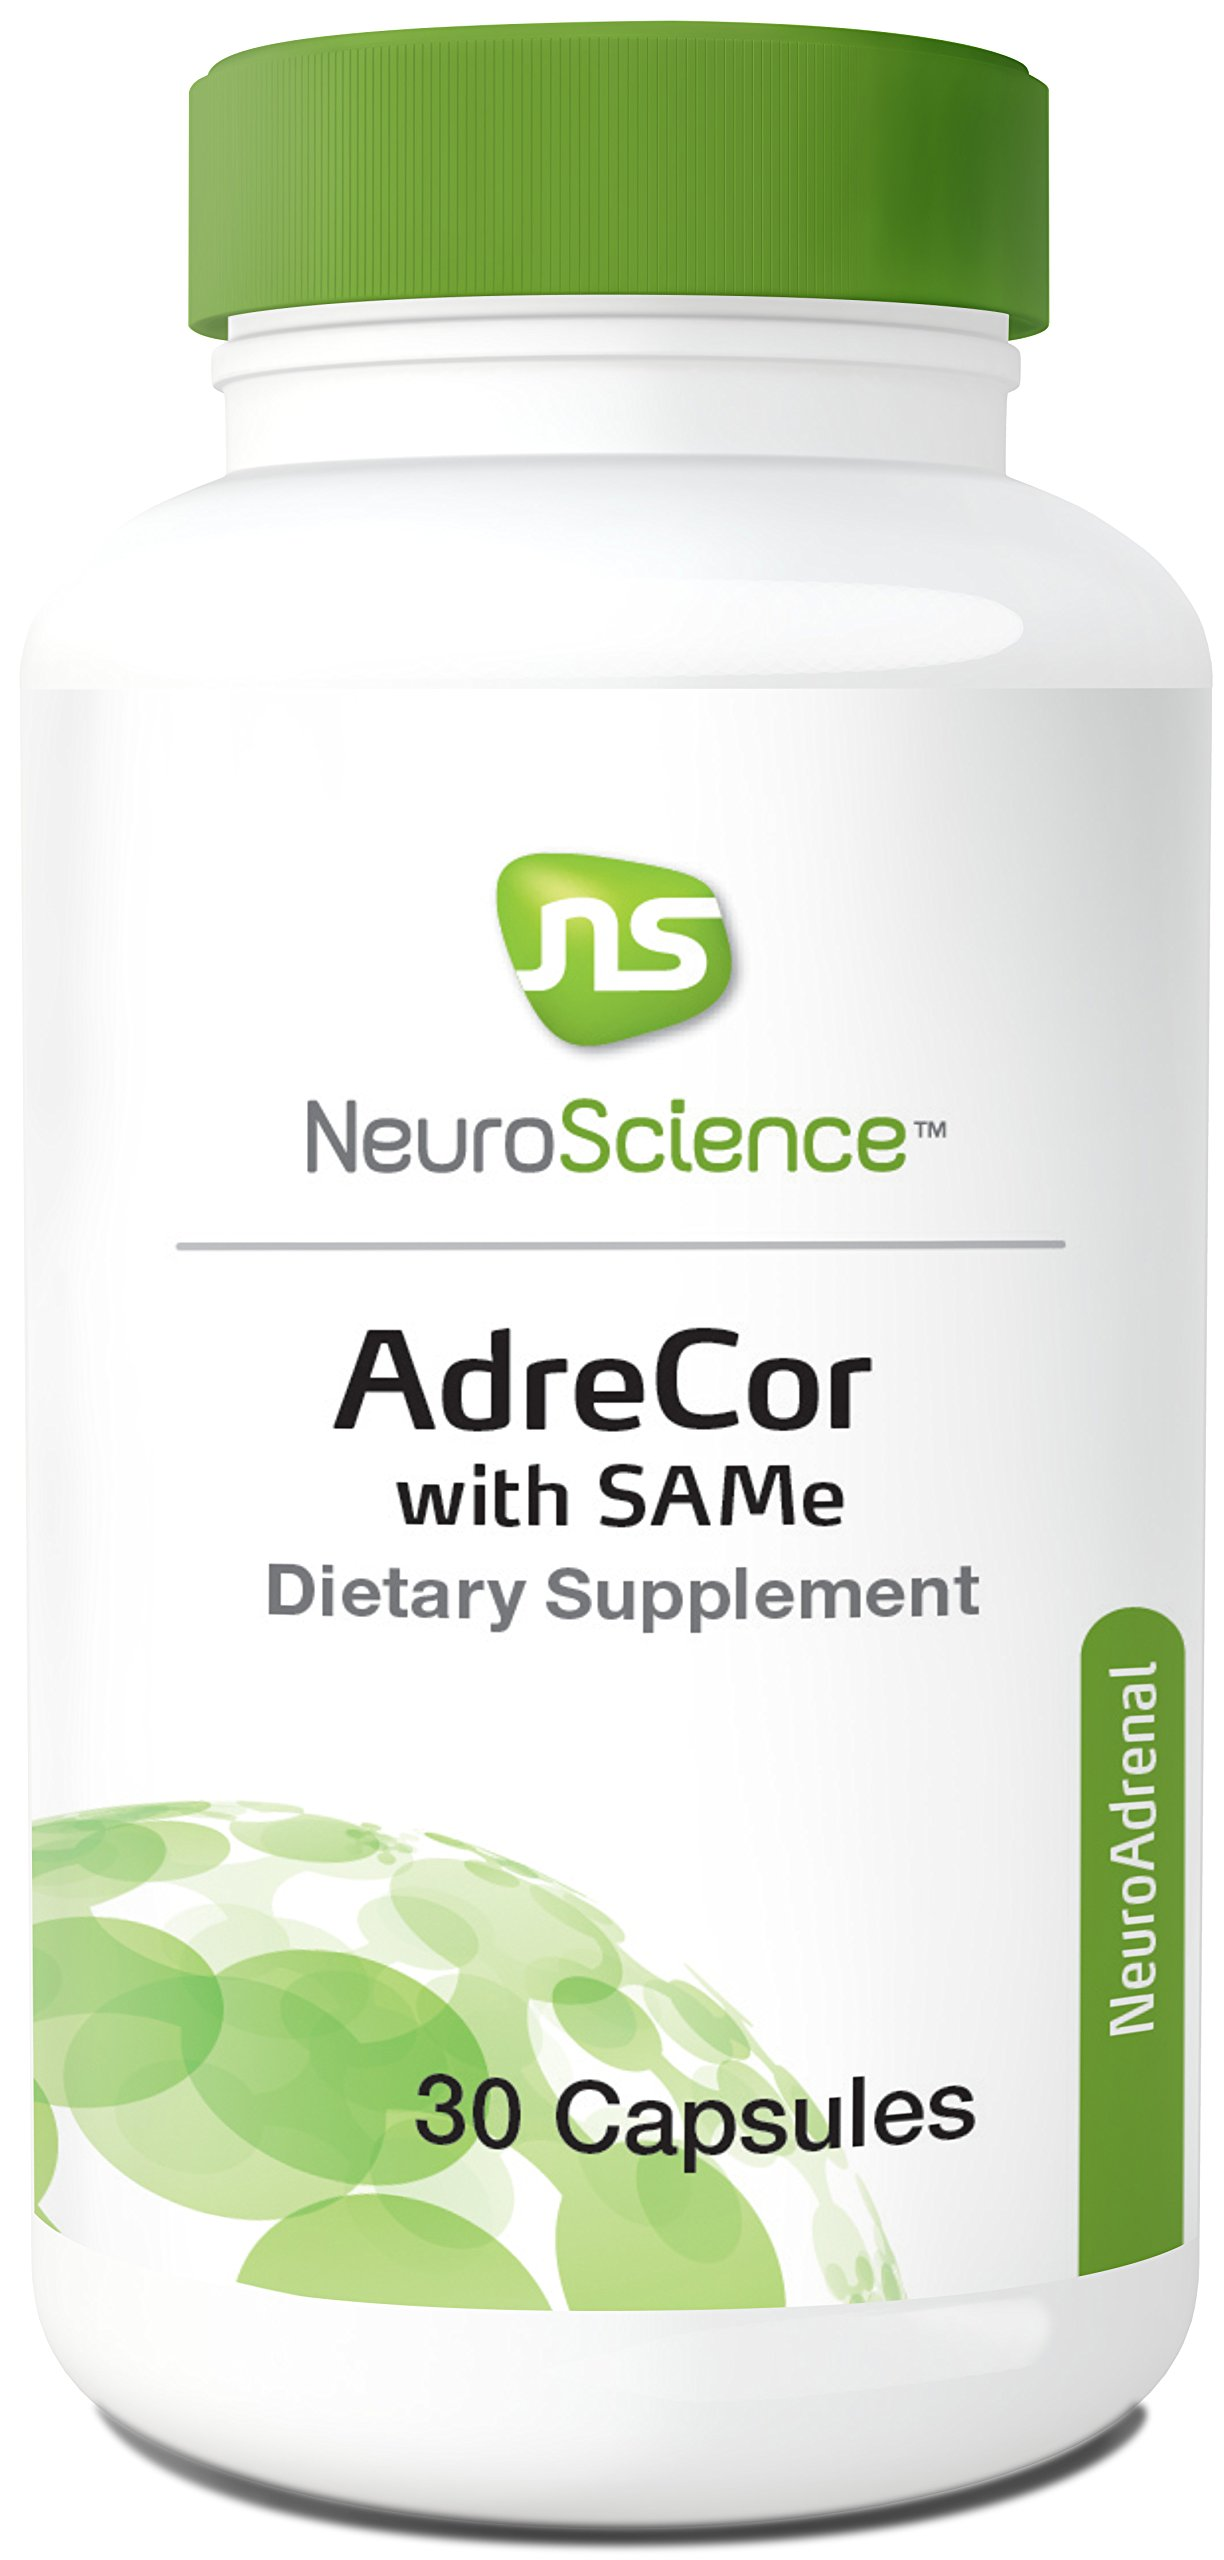 NeuroScience AdreCor with Same - Mood and Adrenal Support Complex with Rhodiola and Histidine (30 Capsules)